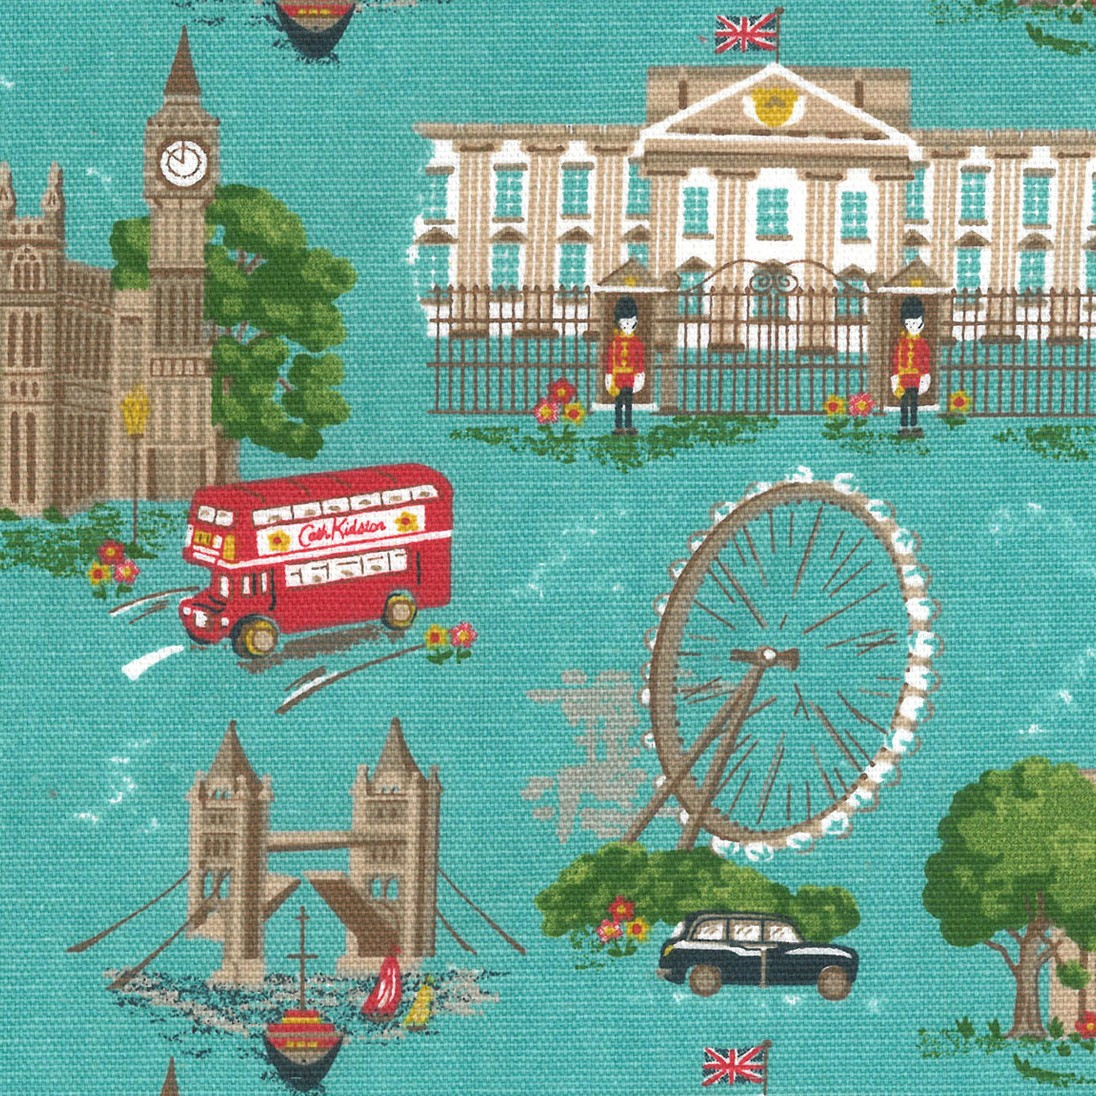 London Scene - Blue - Blue Cath Kidston cotton fabric with London style print